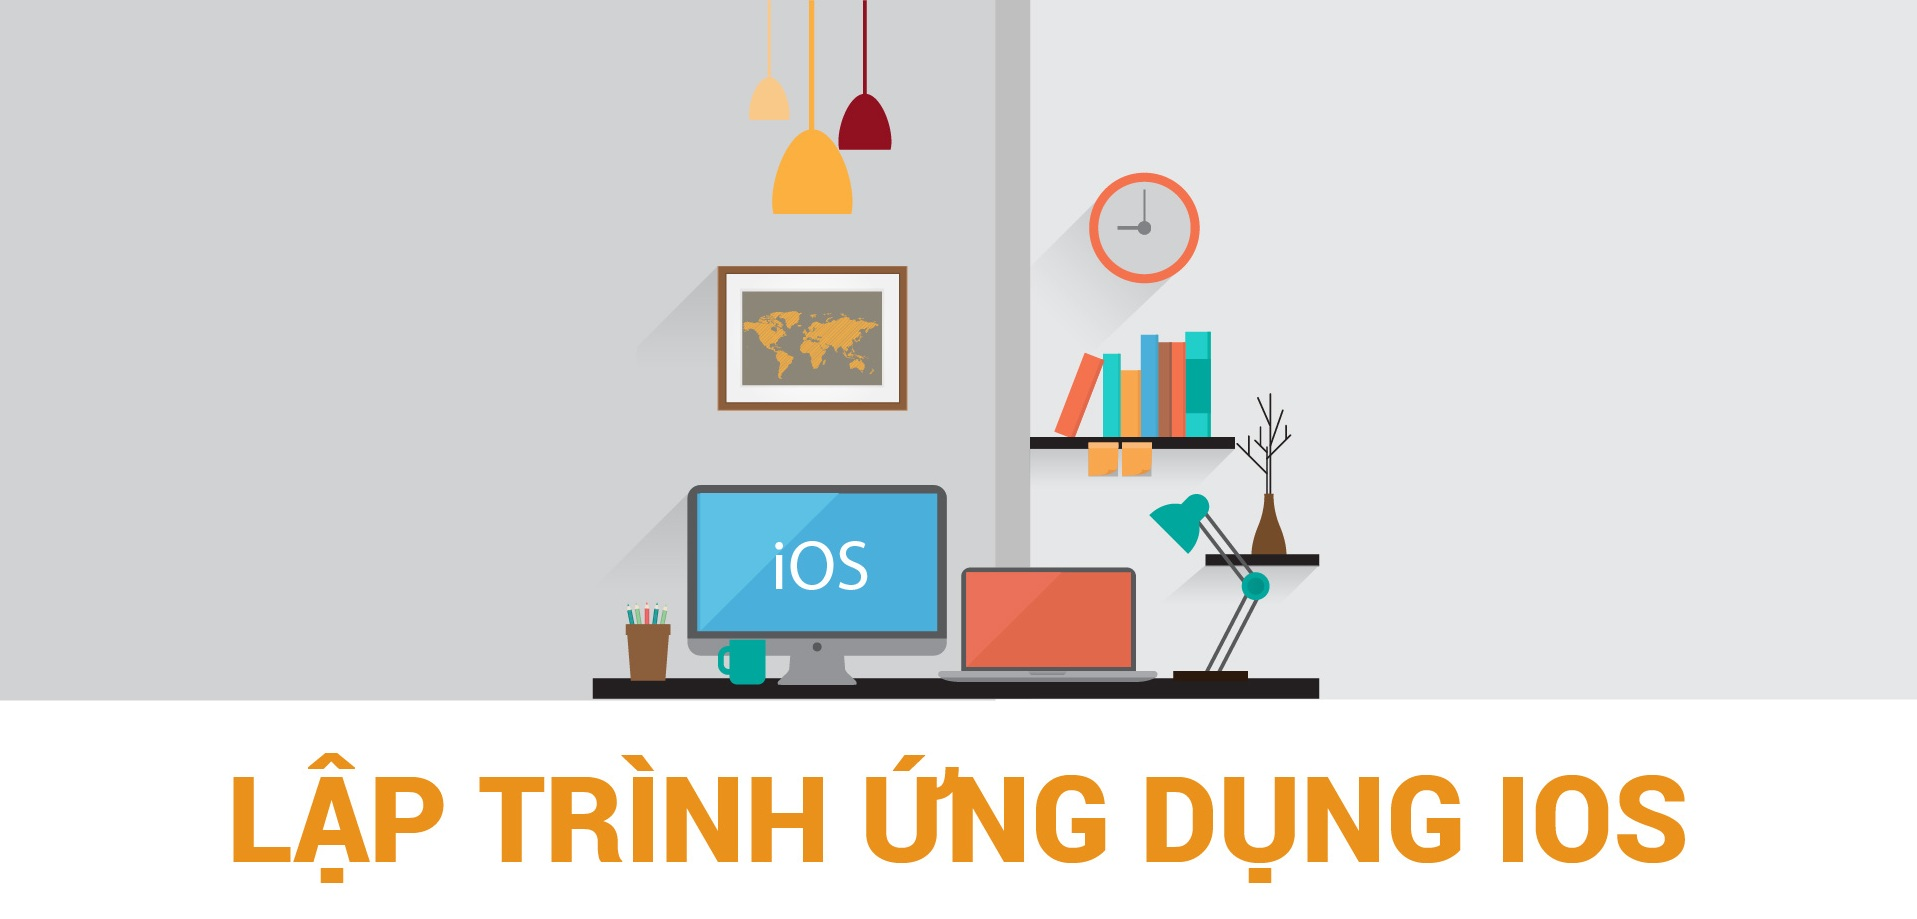 lap-trinh-ung-dung-ios